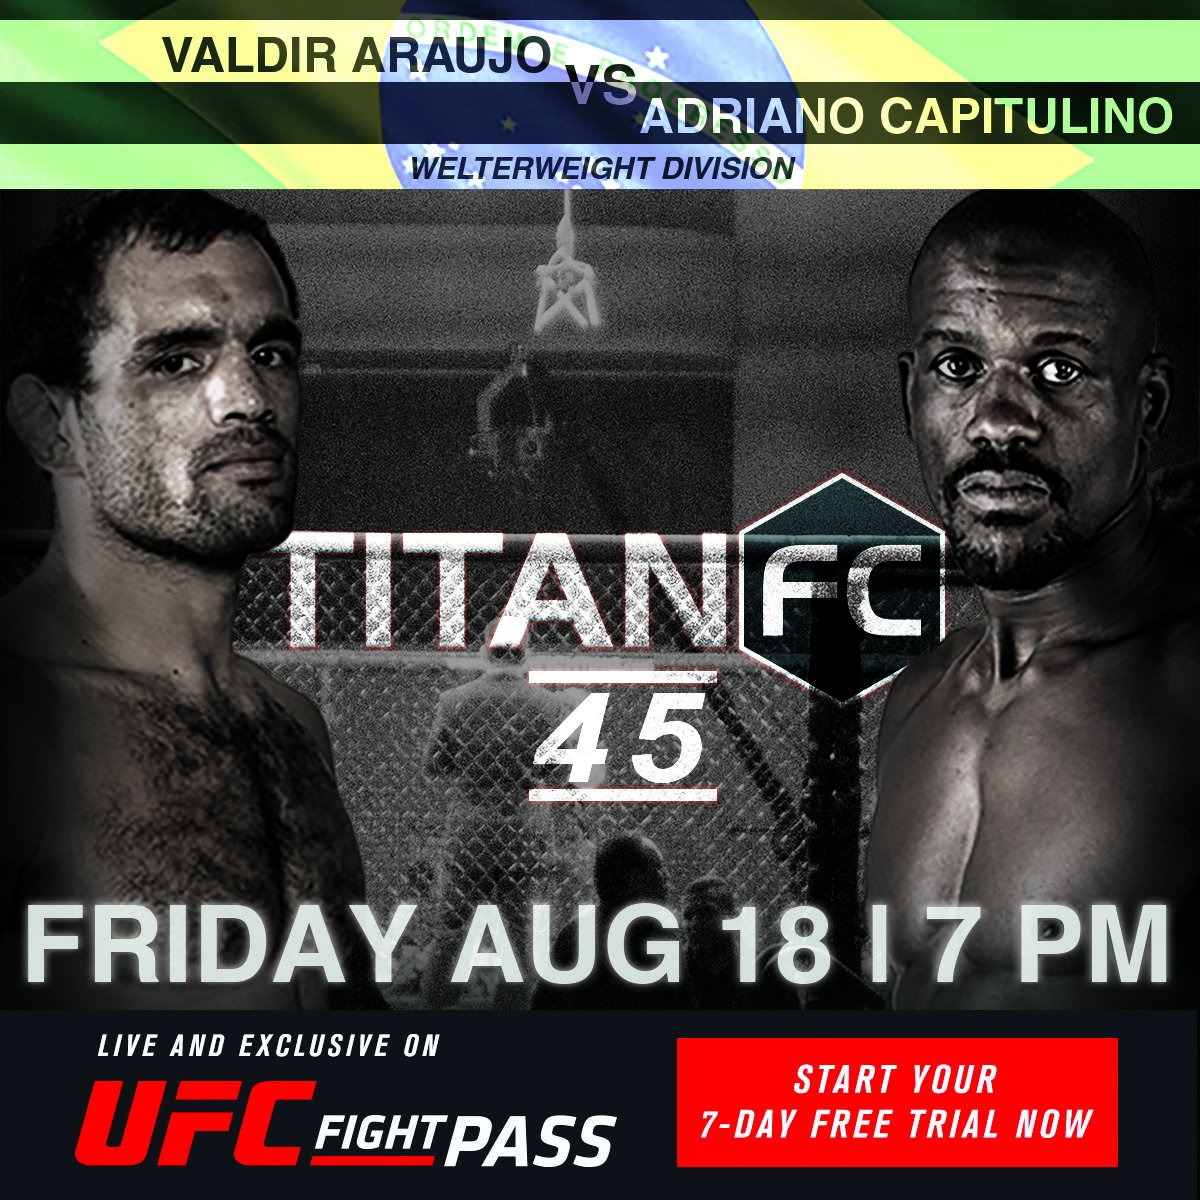 1 hour to go! #TitanFC45 is LIVE and Exclusive on #UFCFIGHTPASS at 7pm...